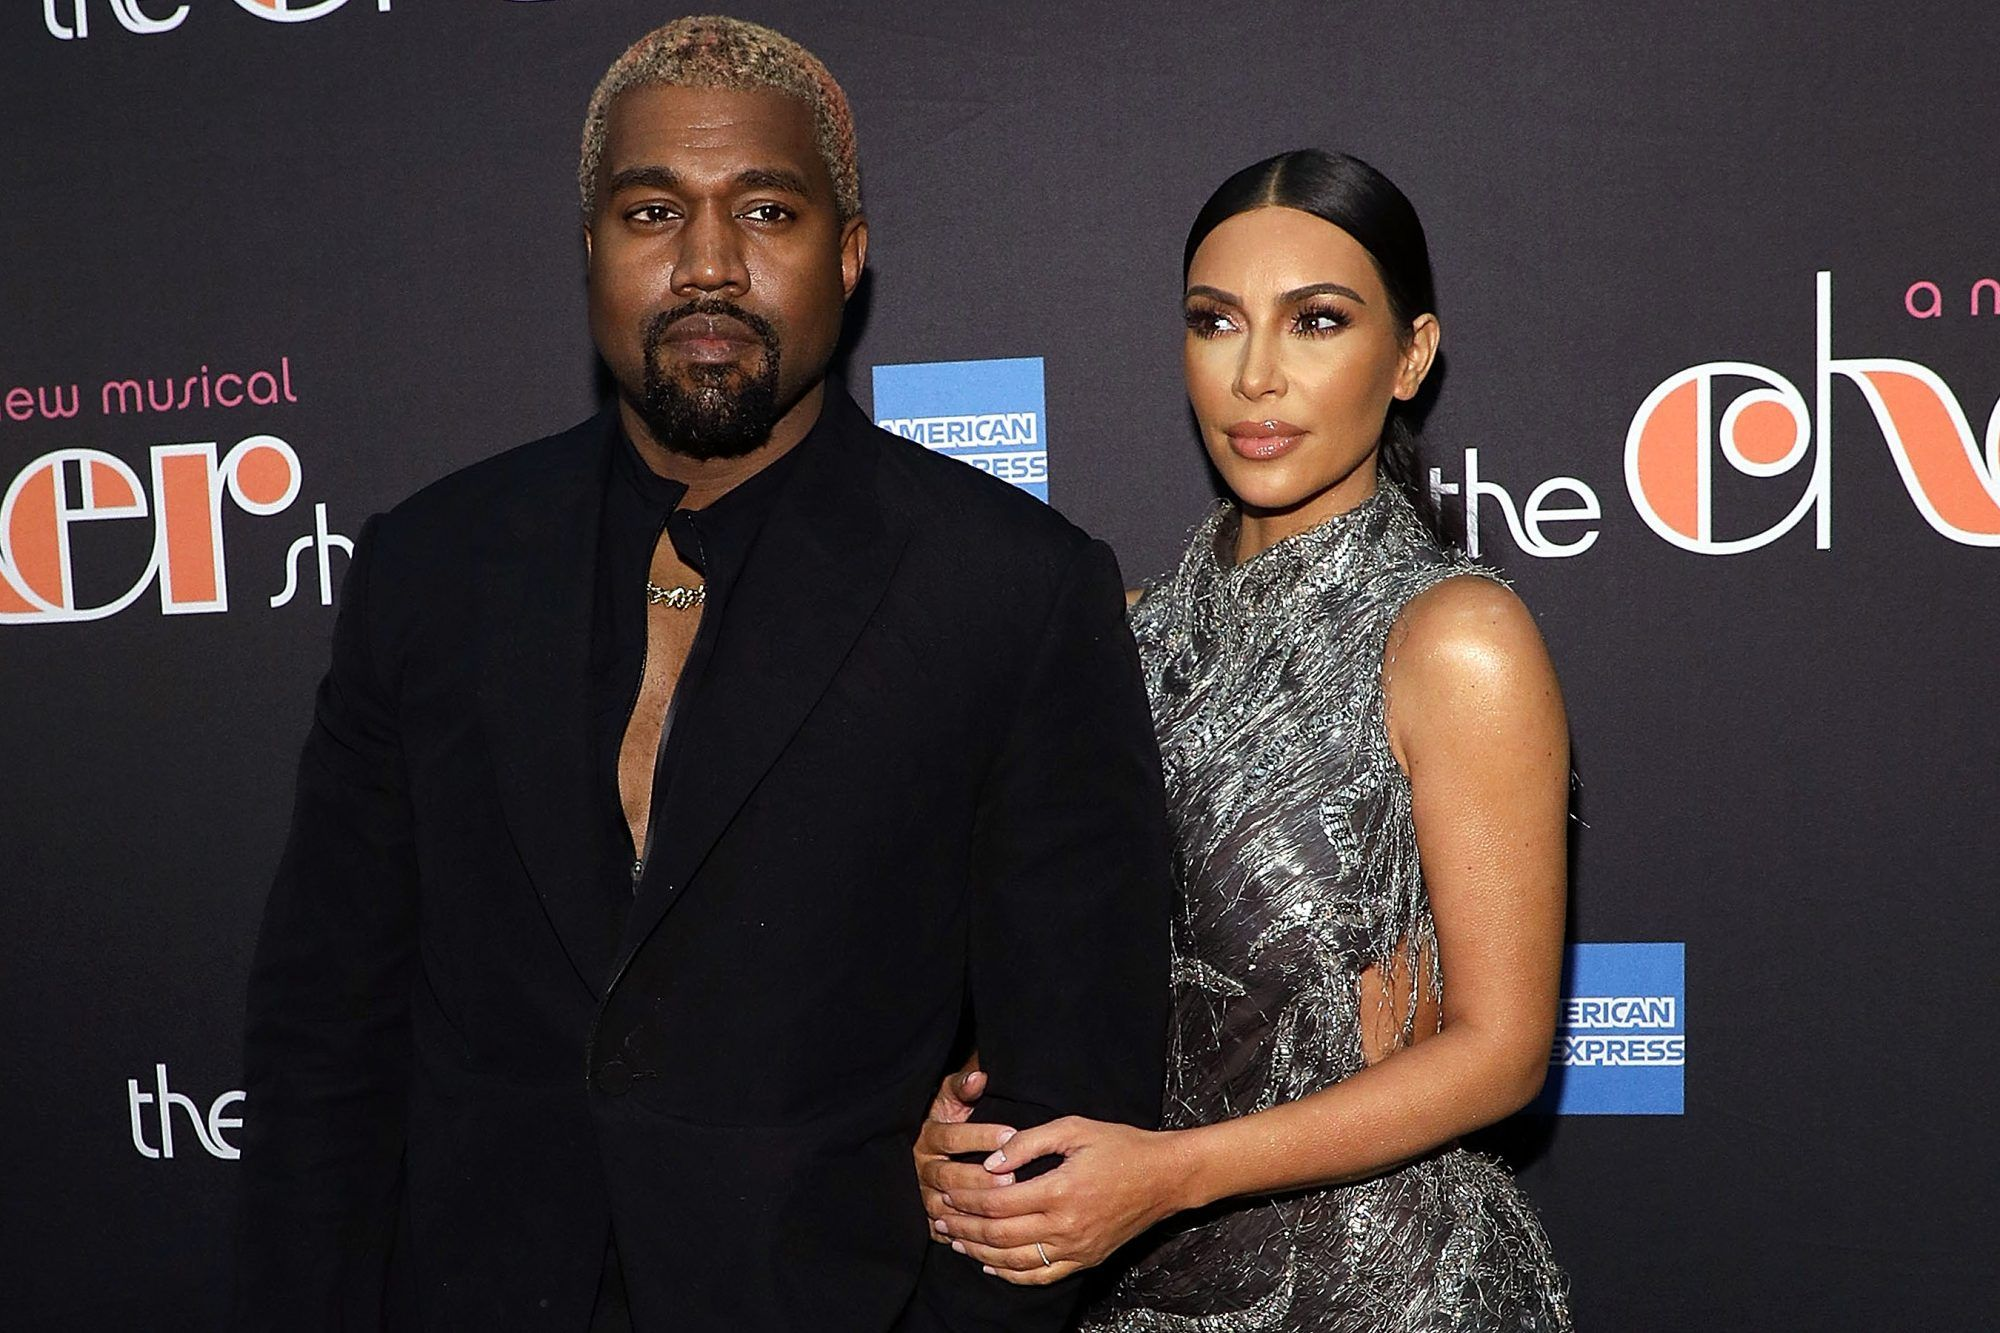 Kim Kardashian Previously Warned Husband Kanye West About Possible Presidential Run In 2020 Kanye West And Kim Kanye West Kim Kardashian